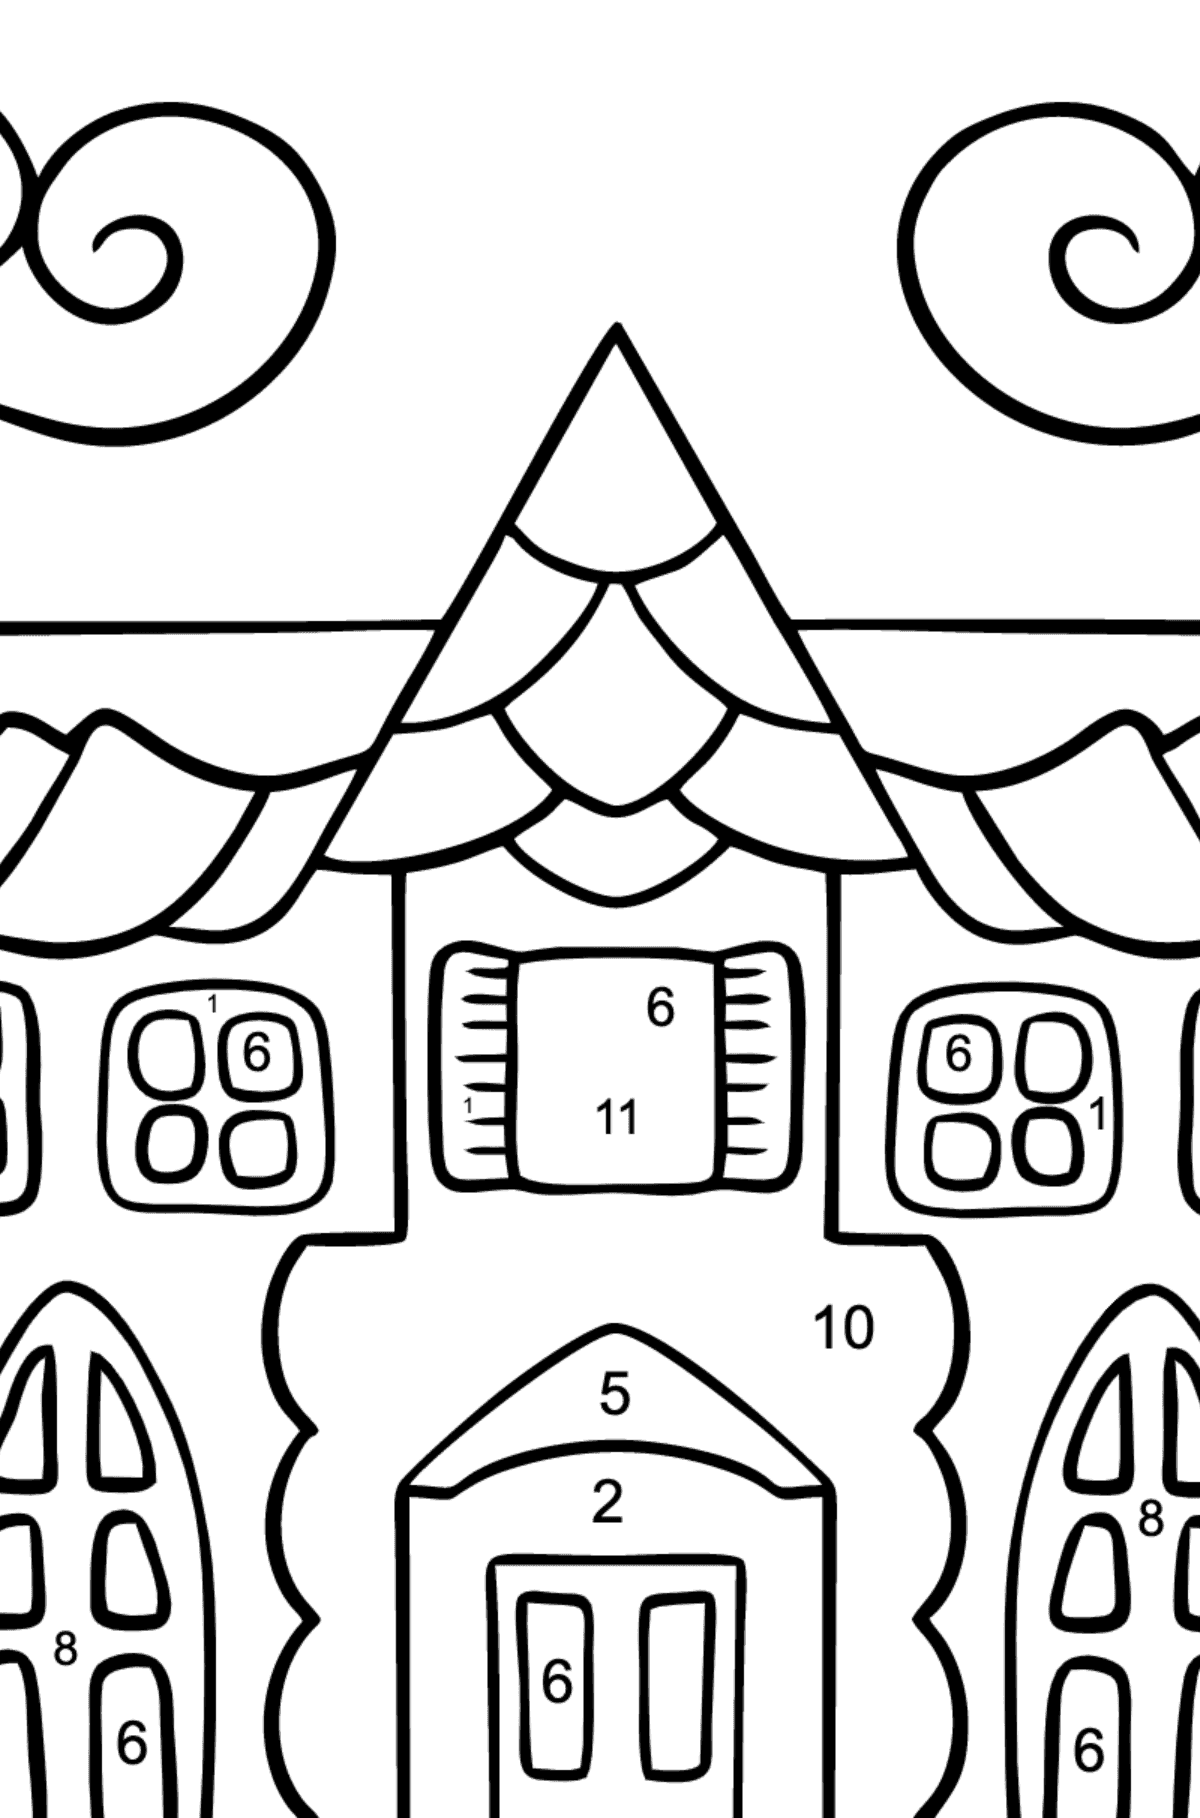 Coloring Page - A House in an Enchanted Kingdom for Children  - Color by Number